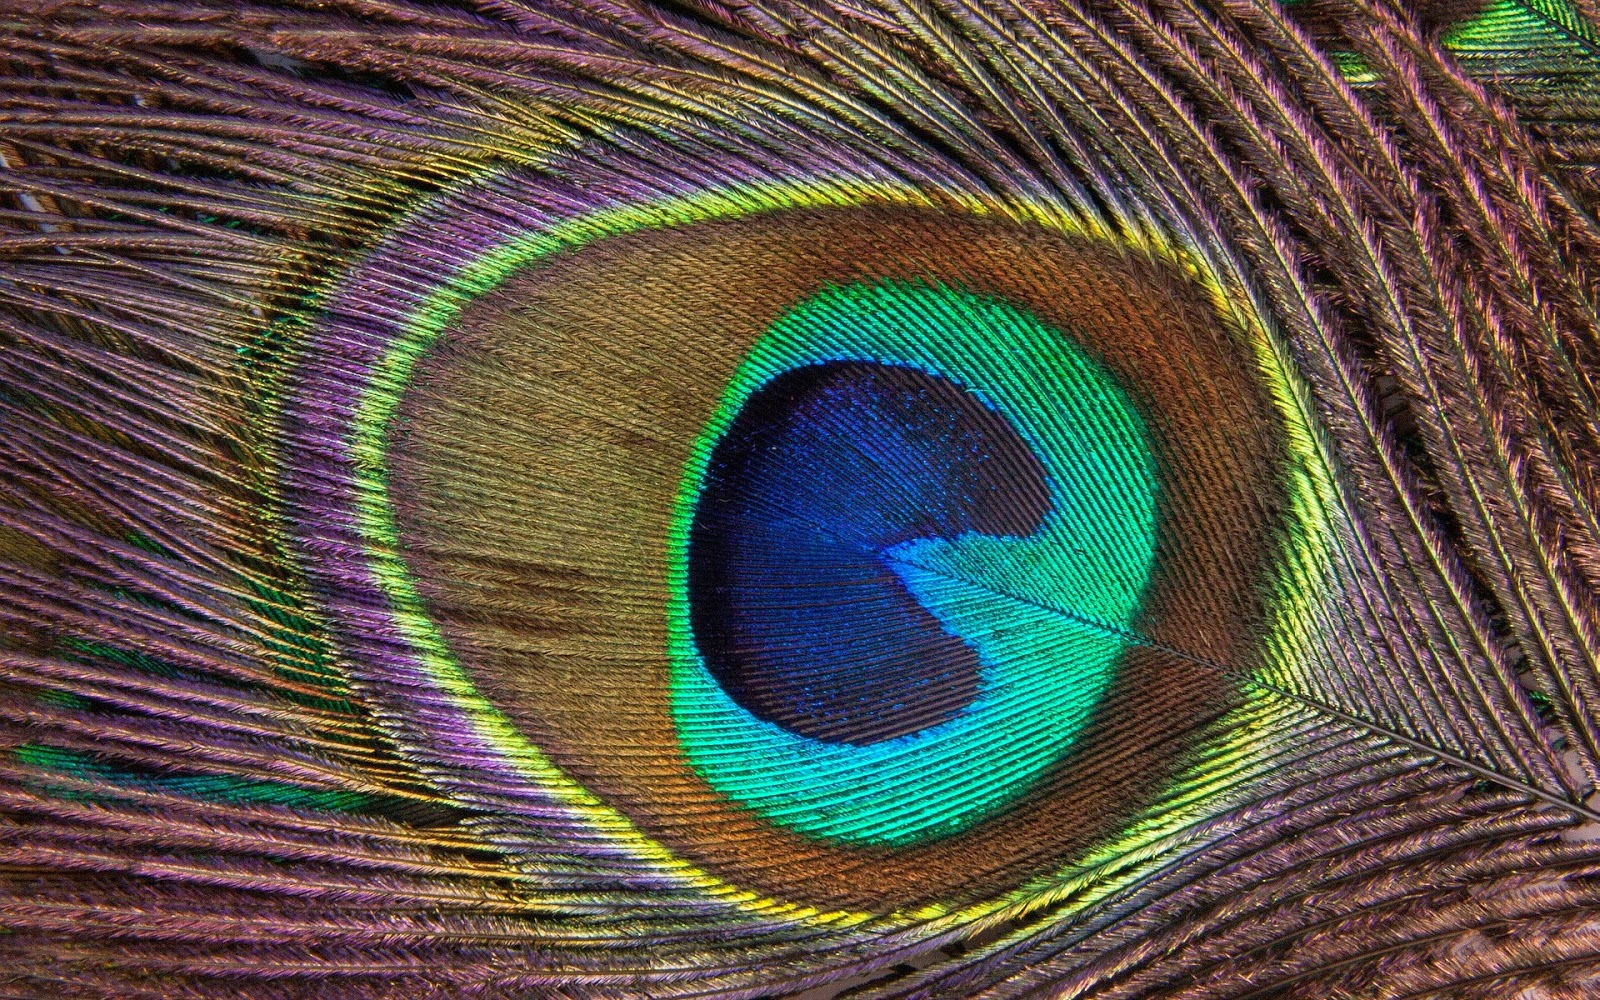 Widescreen HD Wallpaper 1600x1000 DimensionPeacock Feather Wallpapers High Quality